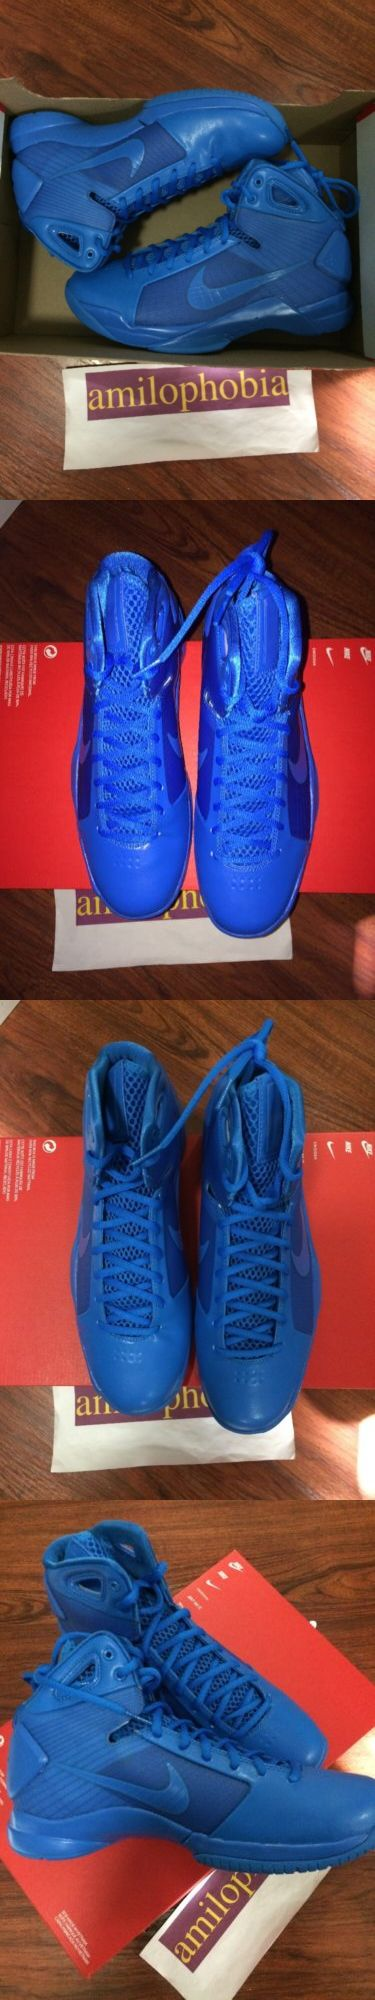 Basketball: New Mens Nike Hyperdunk 08 Size 8.5 Photo Blue Basketball Shoes -> BUY IT NOW ONLY: $64.0 on eBay!